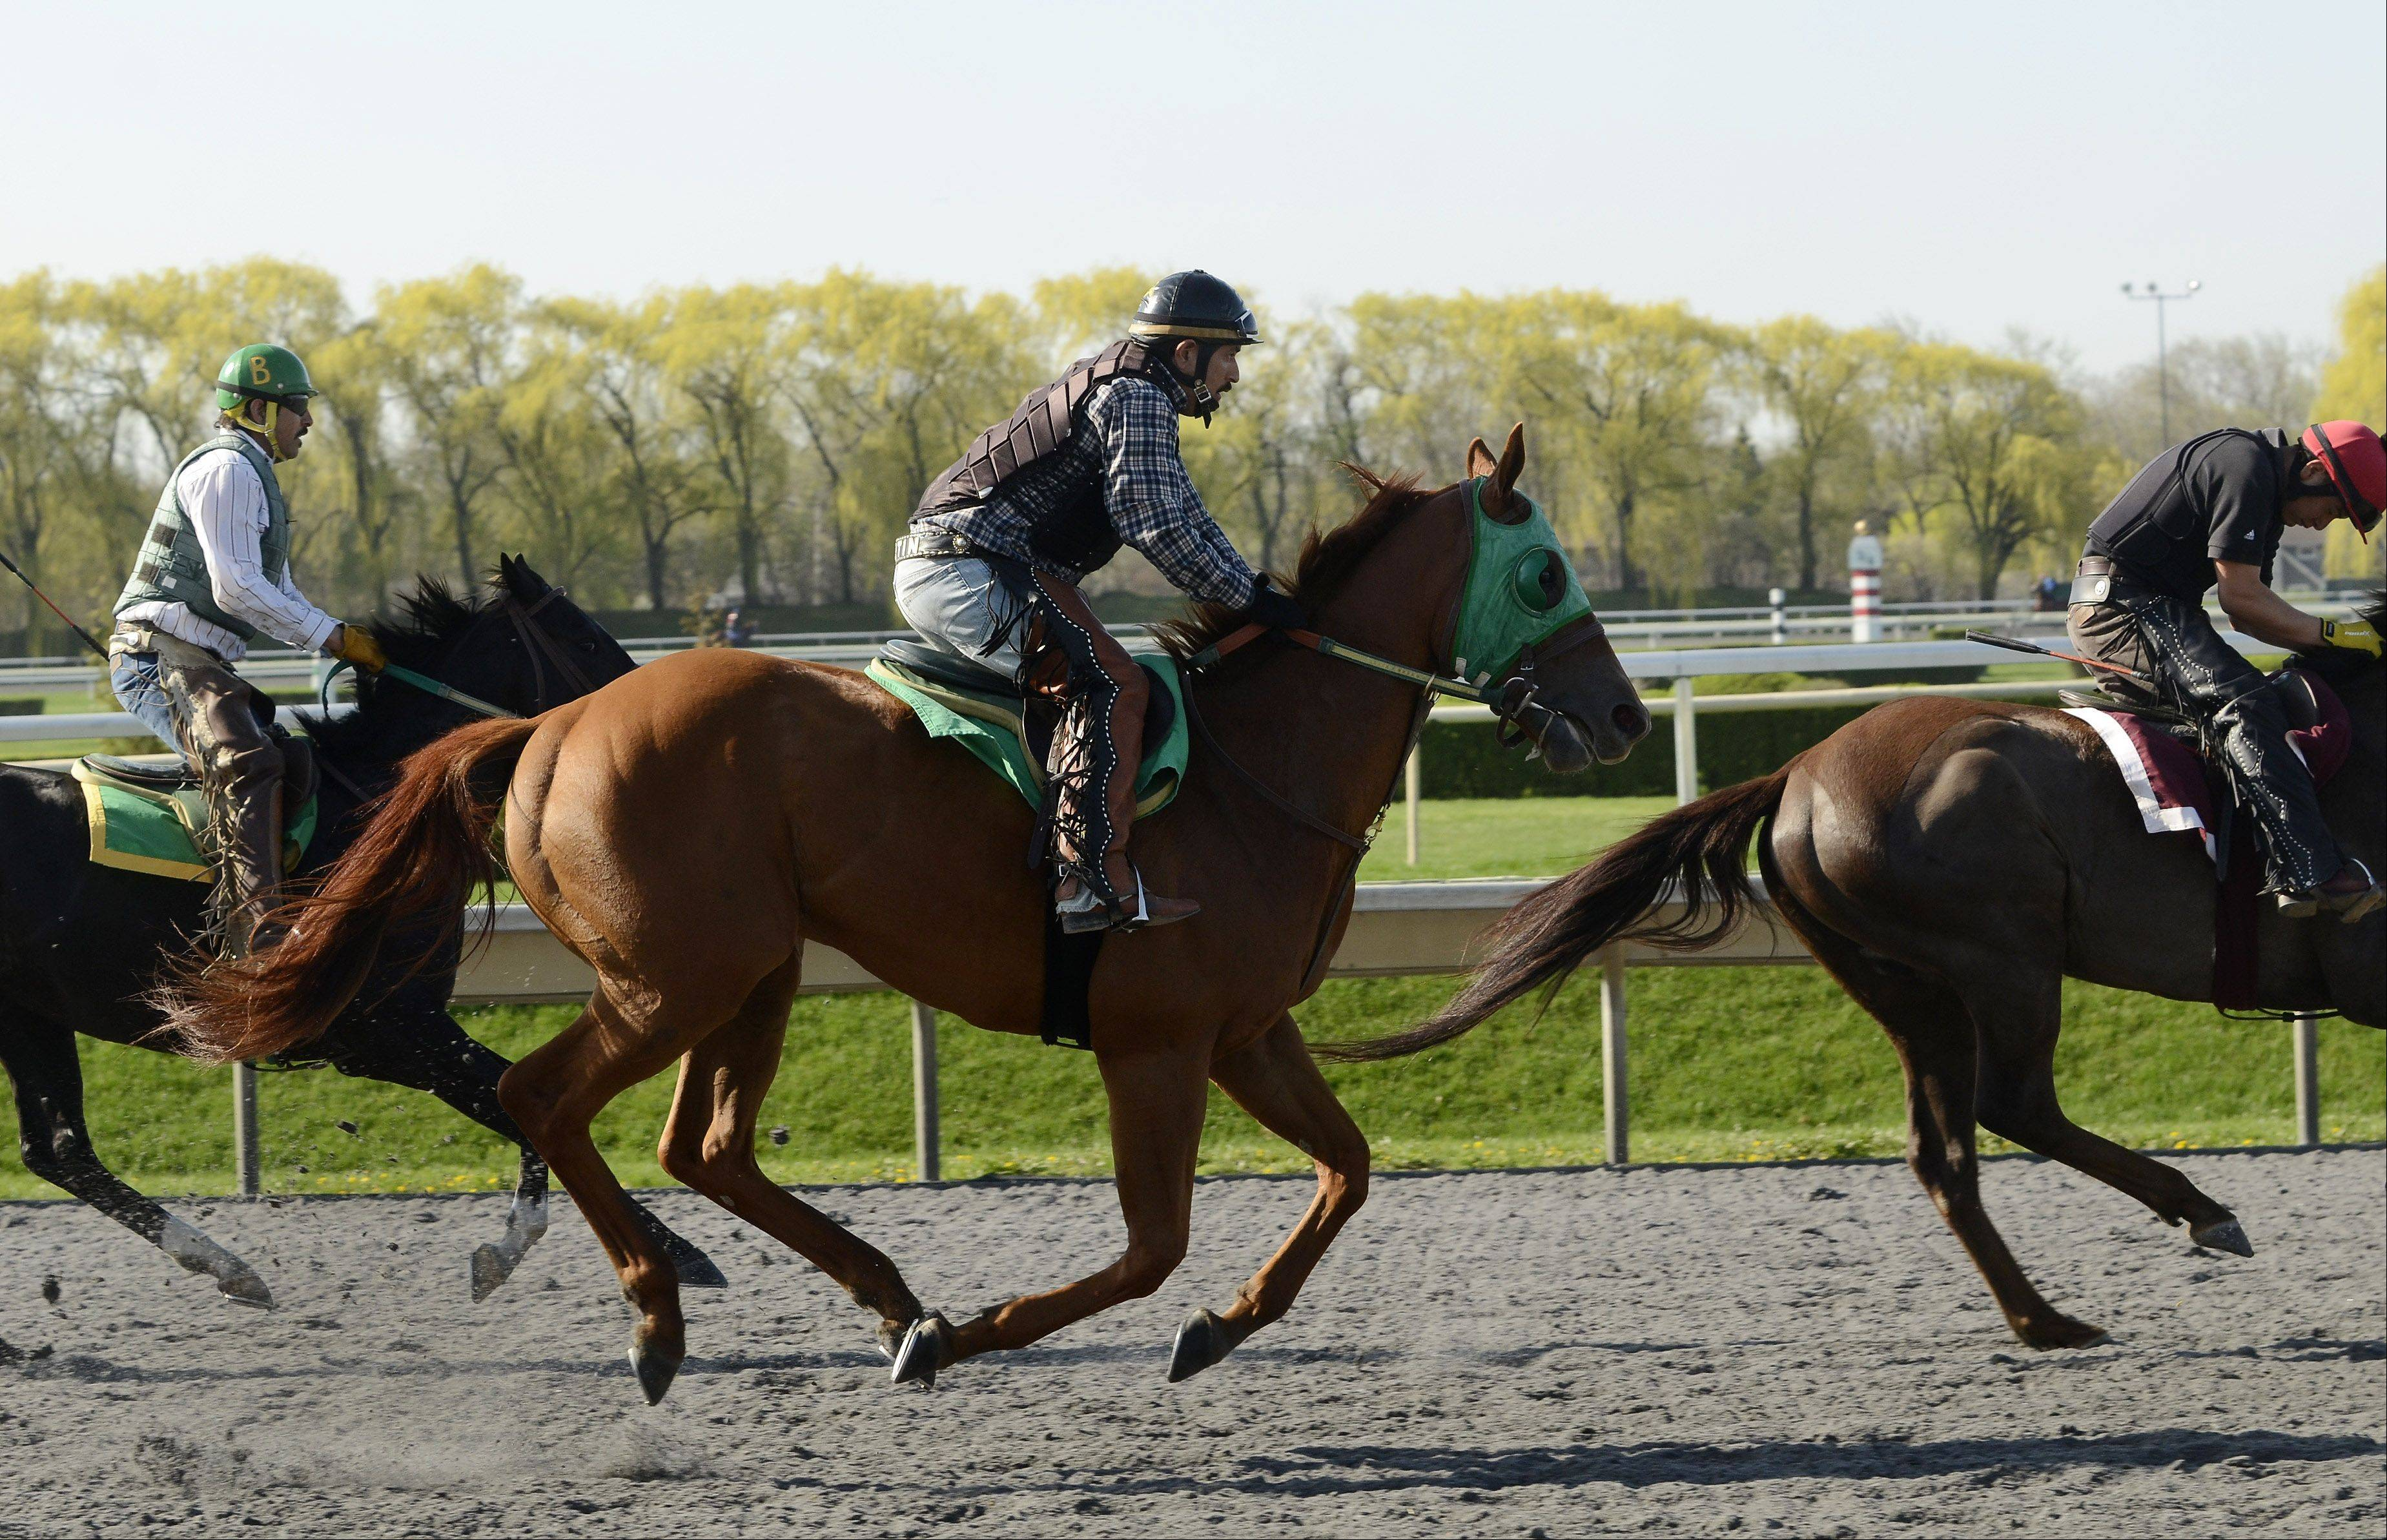 A push to once again allow Illinoisans to bet on horses online continues to advance after the Illinois House on Sunday approved the proposal. Arlington International Racecourse officials are among the horse racing industry advocates wanting to give gamblers back their online betting abilities after the rules allowing it expired at the beginning of the year.